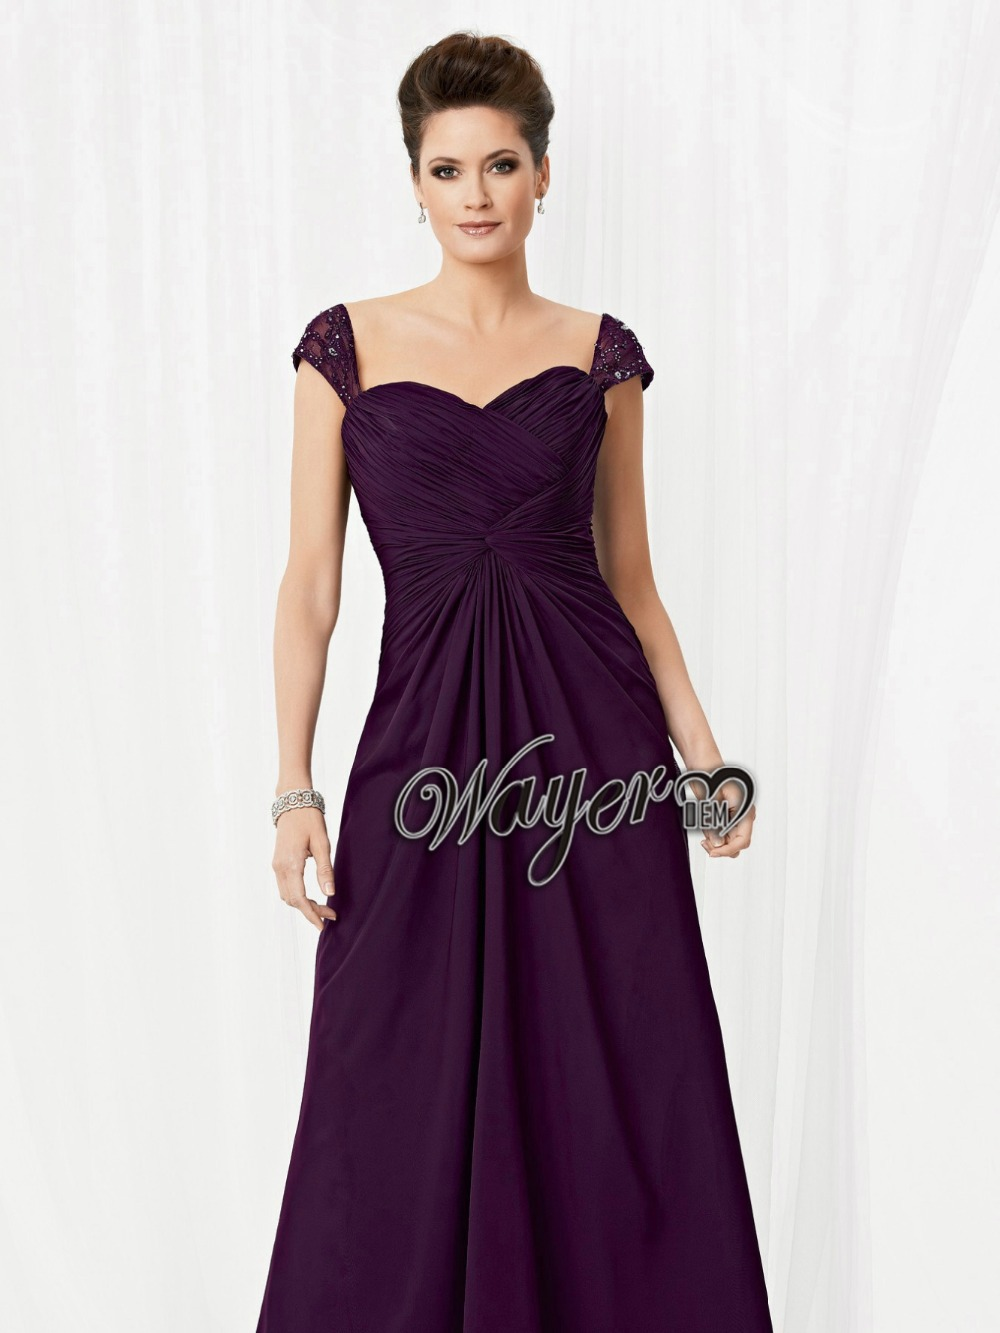 4213b5826c1 Buy Plus Size Evening Dress Chiffon Ruched Royal Blue Party Dresses Halter  Empire Rhinestone Evening Gown Robe De Soiree JING238 in Cheap Price on  Alibaba. ...